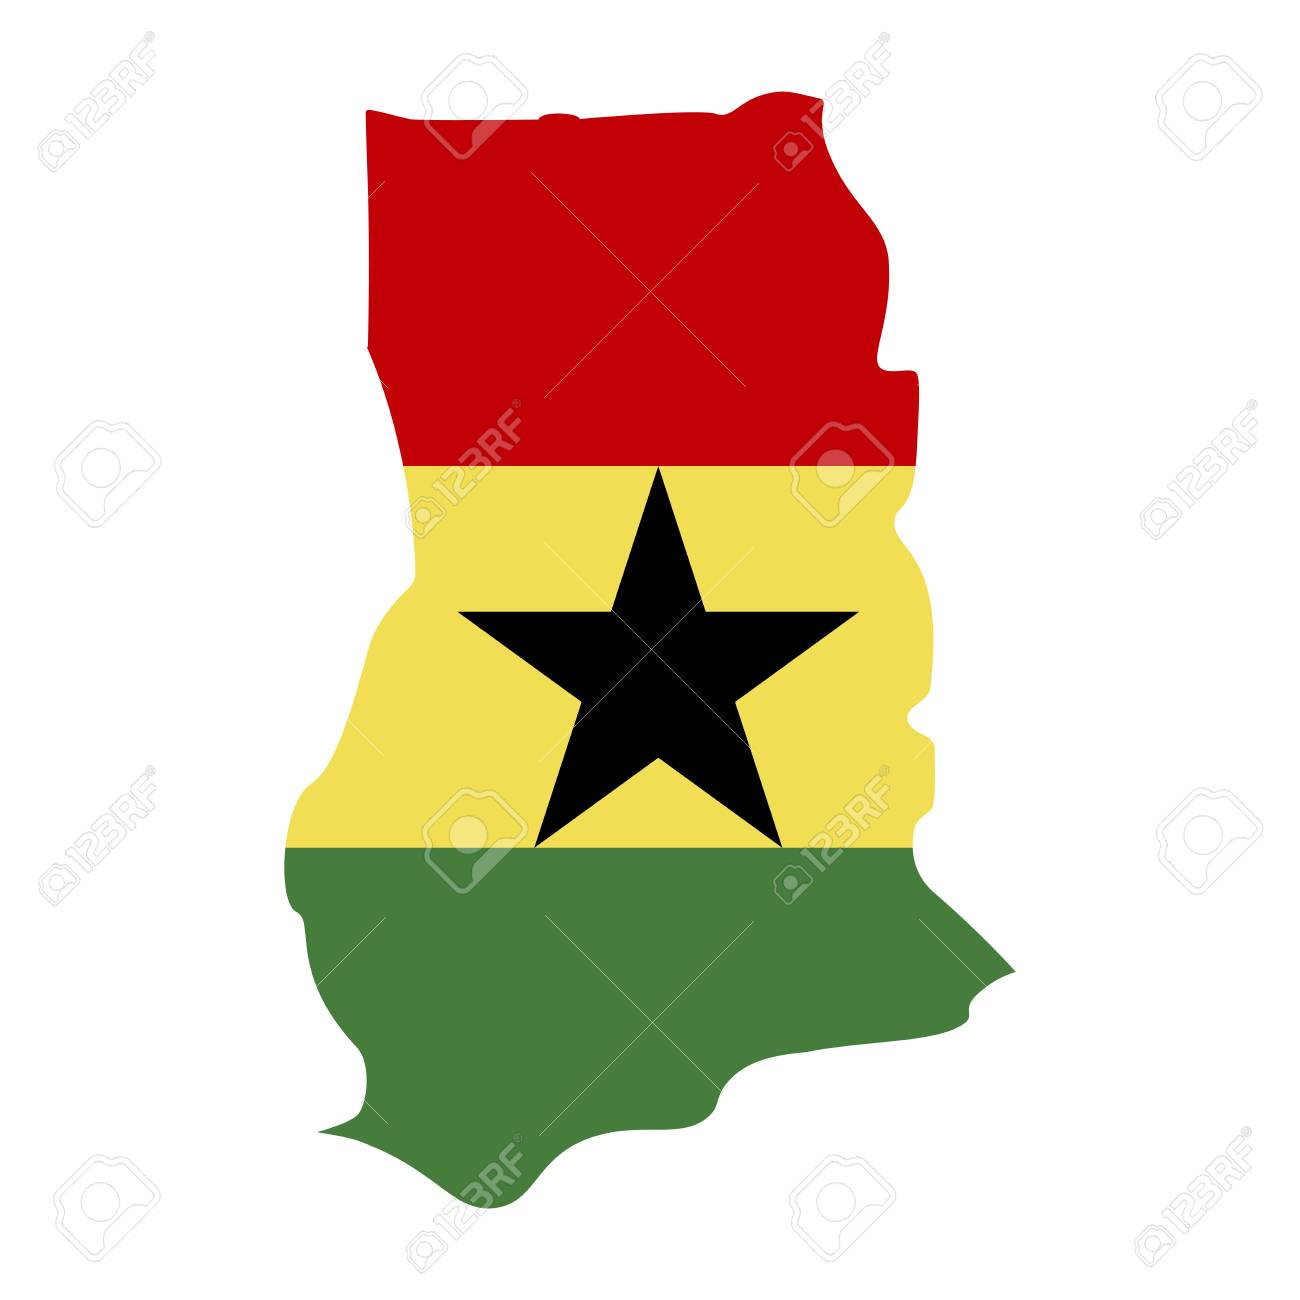 map of Ghana with flag inside. Ghana map vector illustration